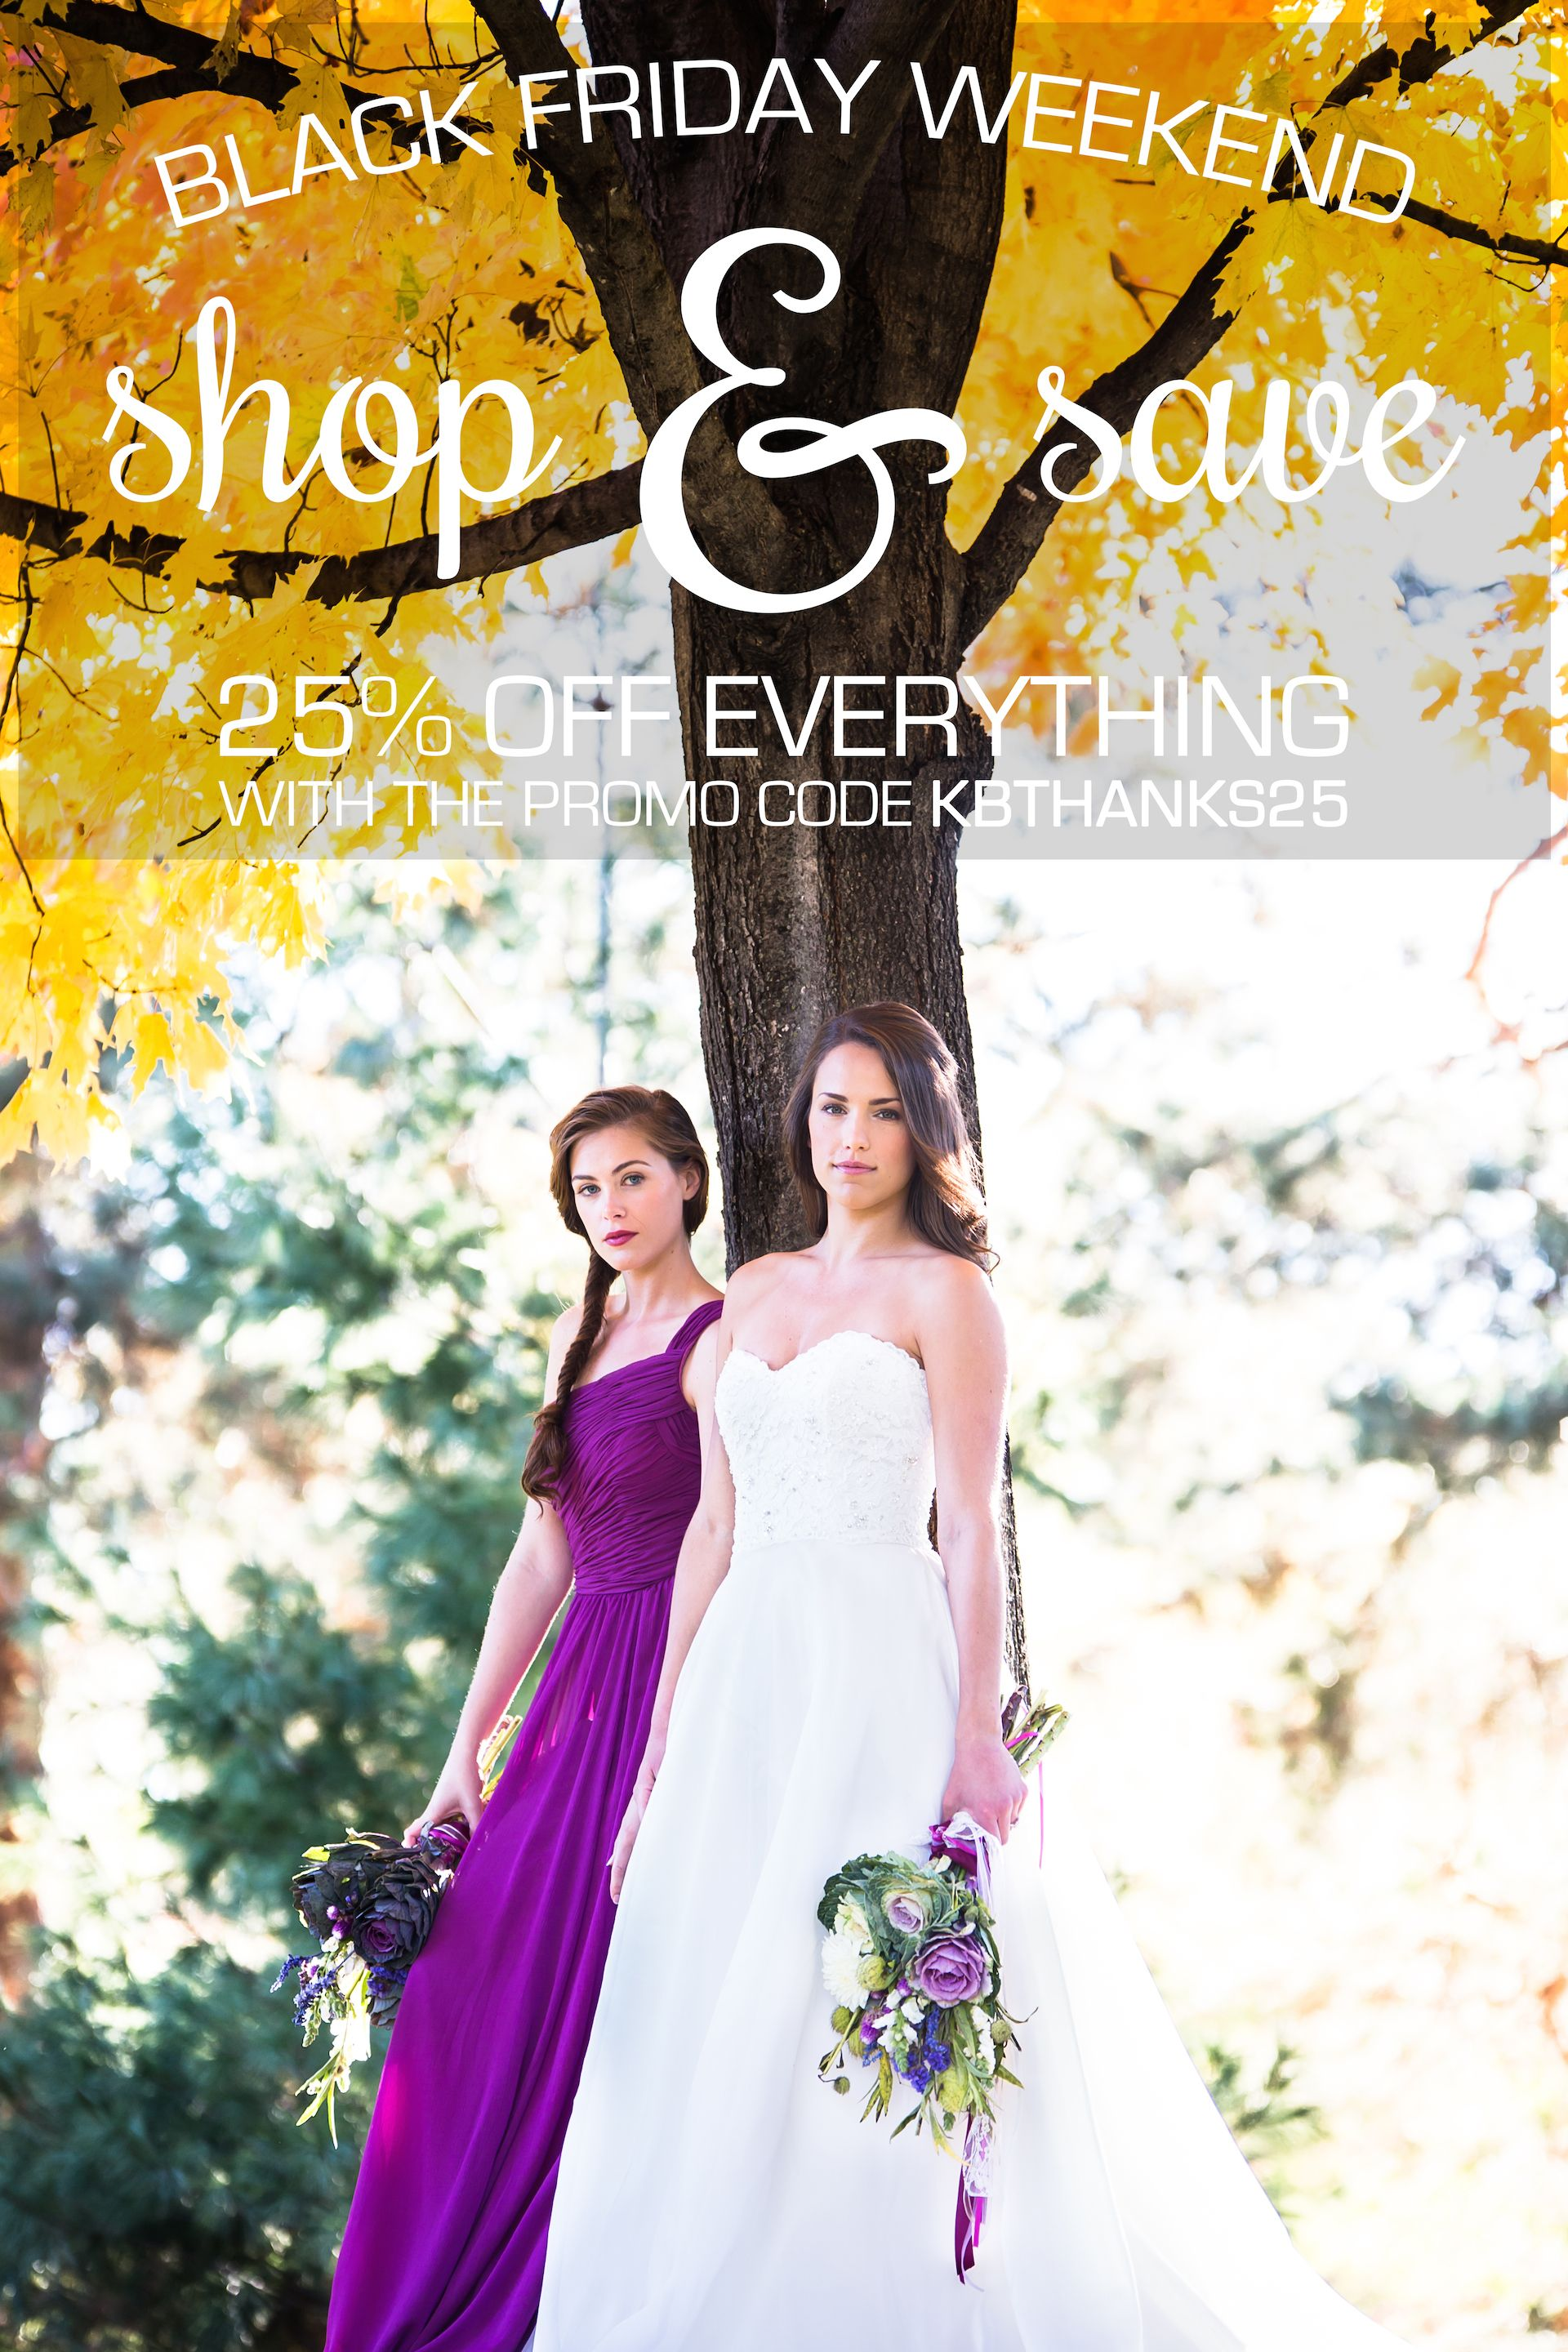 Black friday is our biggest sale event of the year from bridesmaid